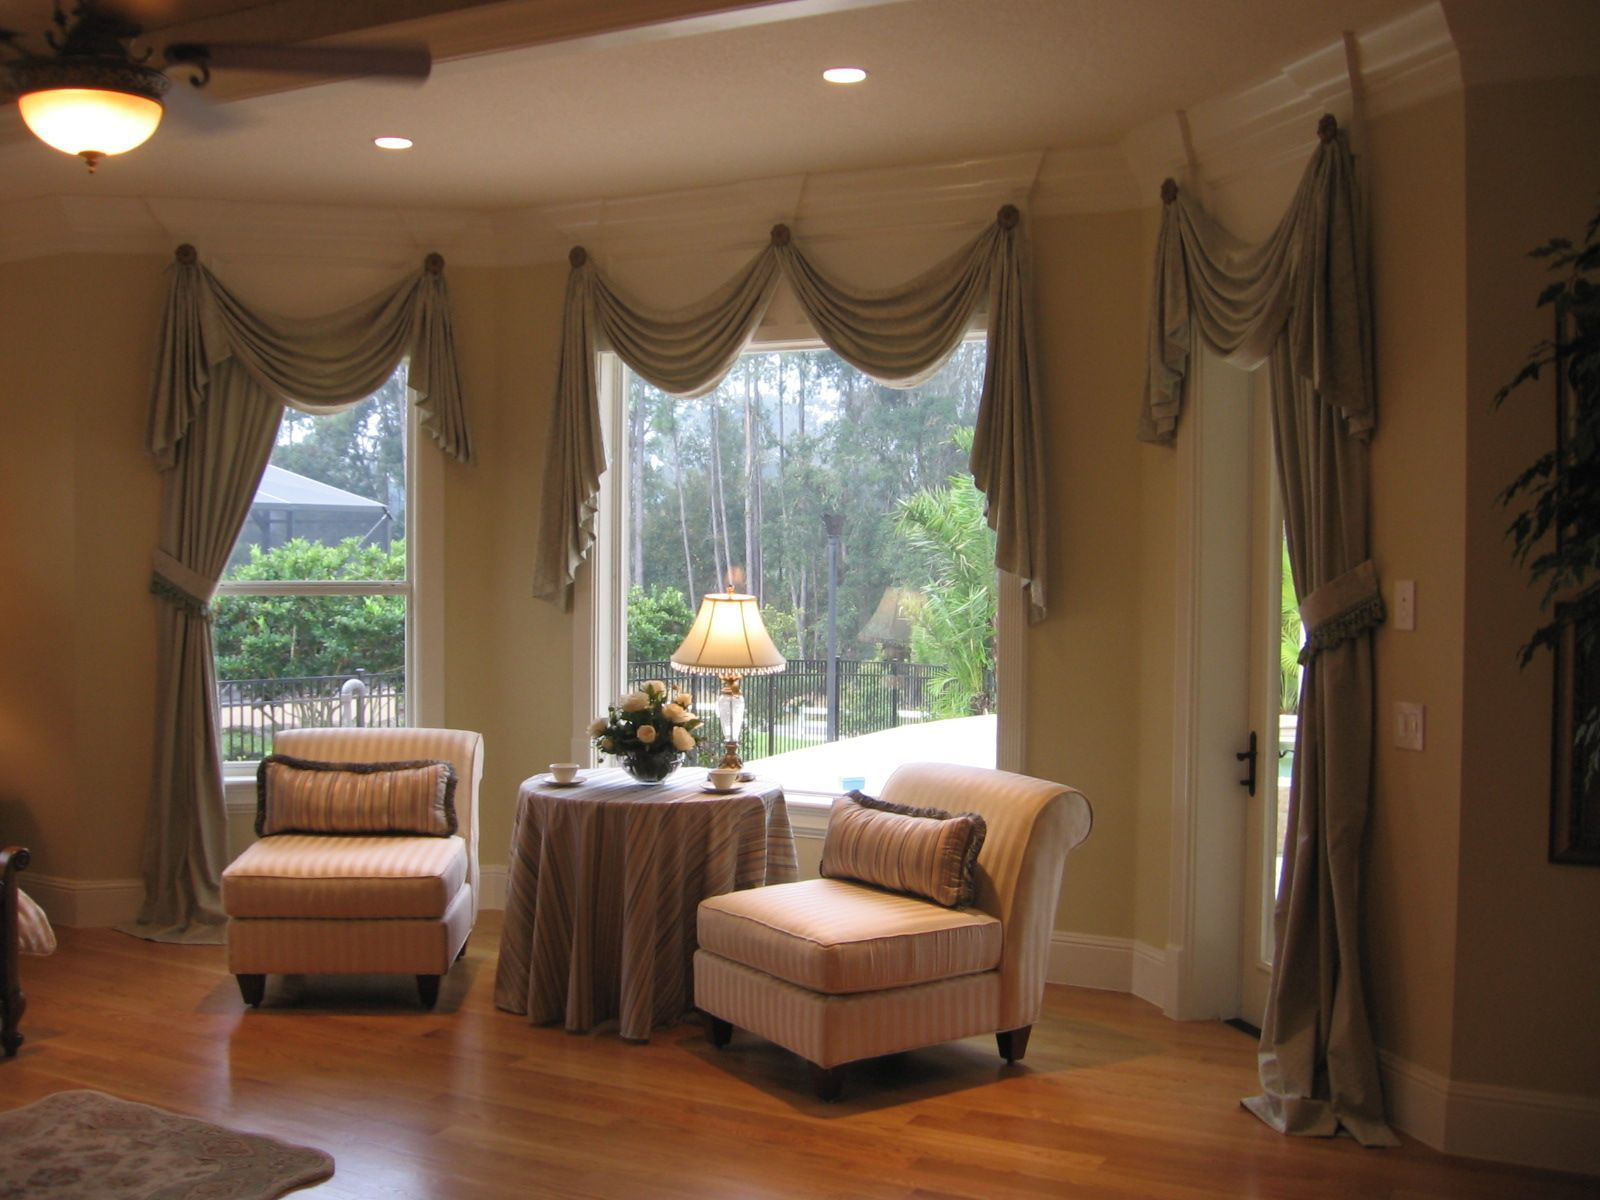 Amazing Custom Window Treatments  Add a Touch of Style and Perfect Home#add #am#...#add #amazing #custom #touch #treatments #window